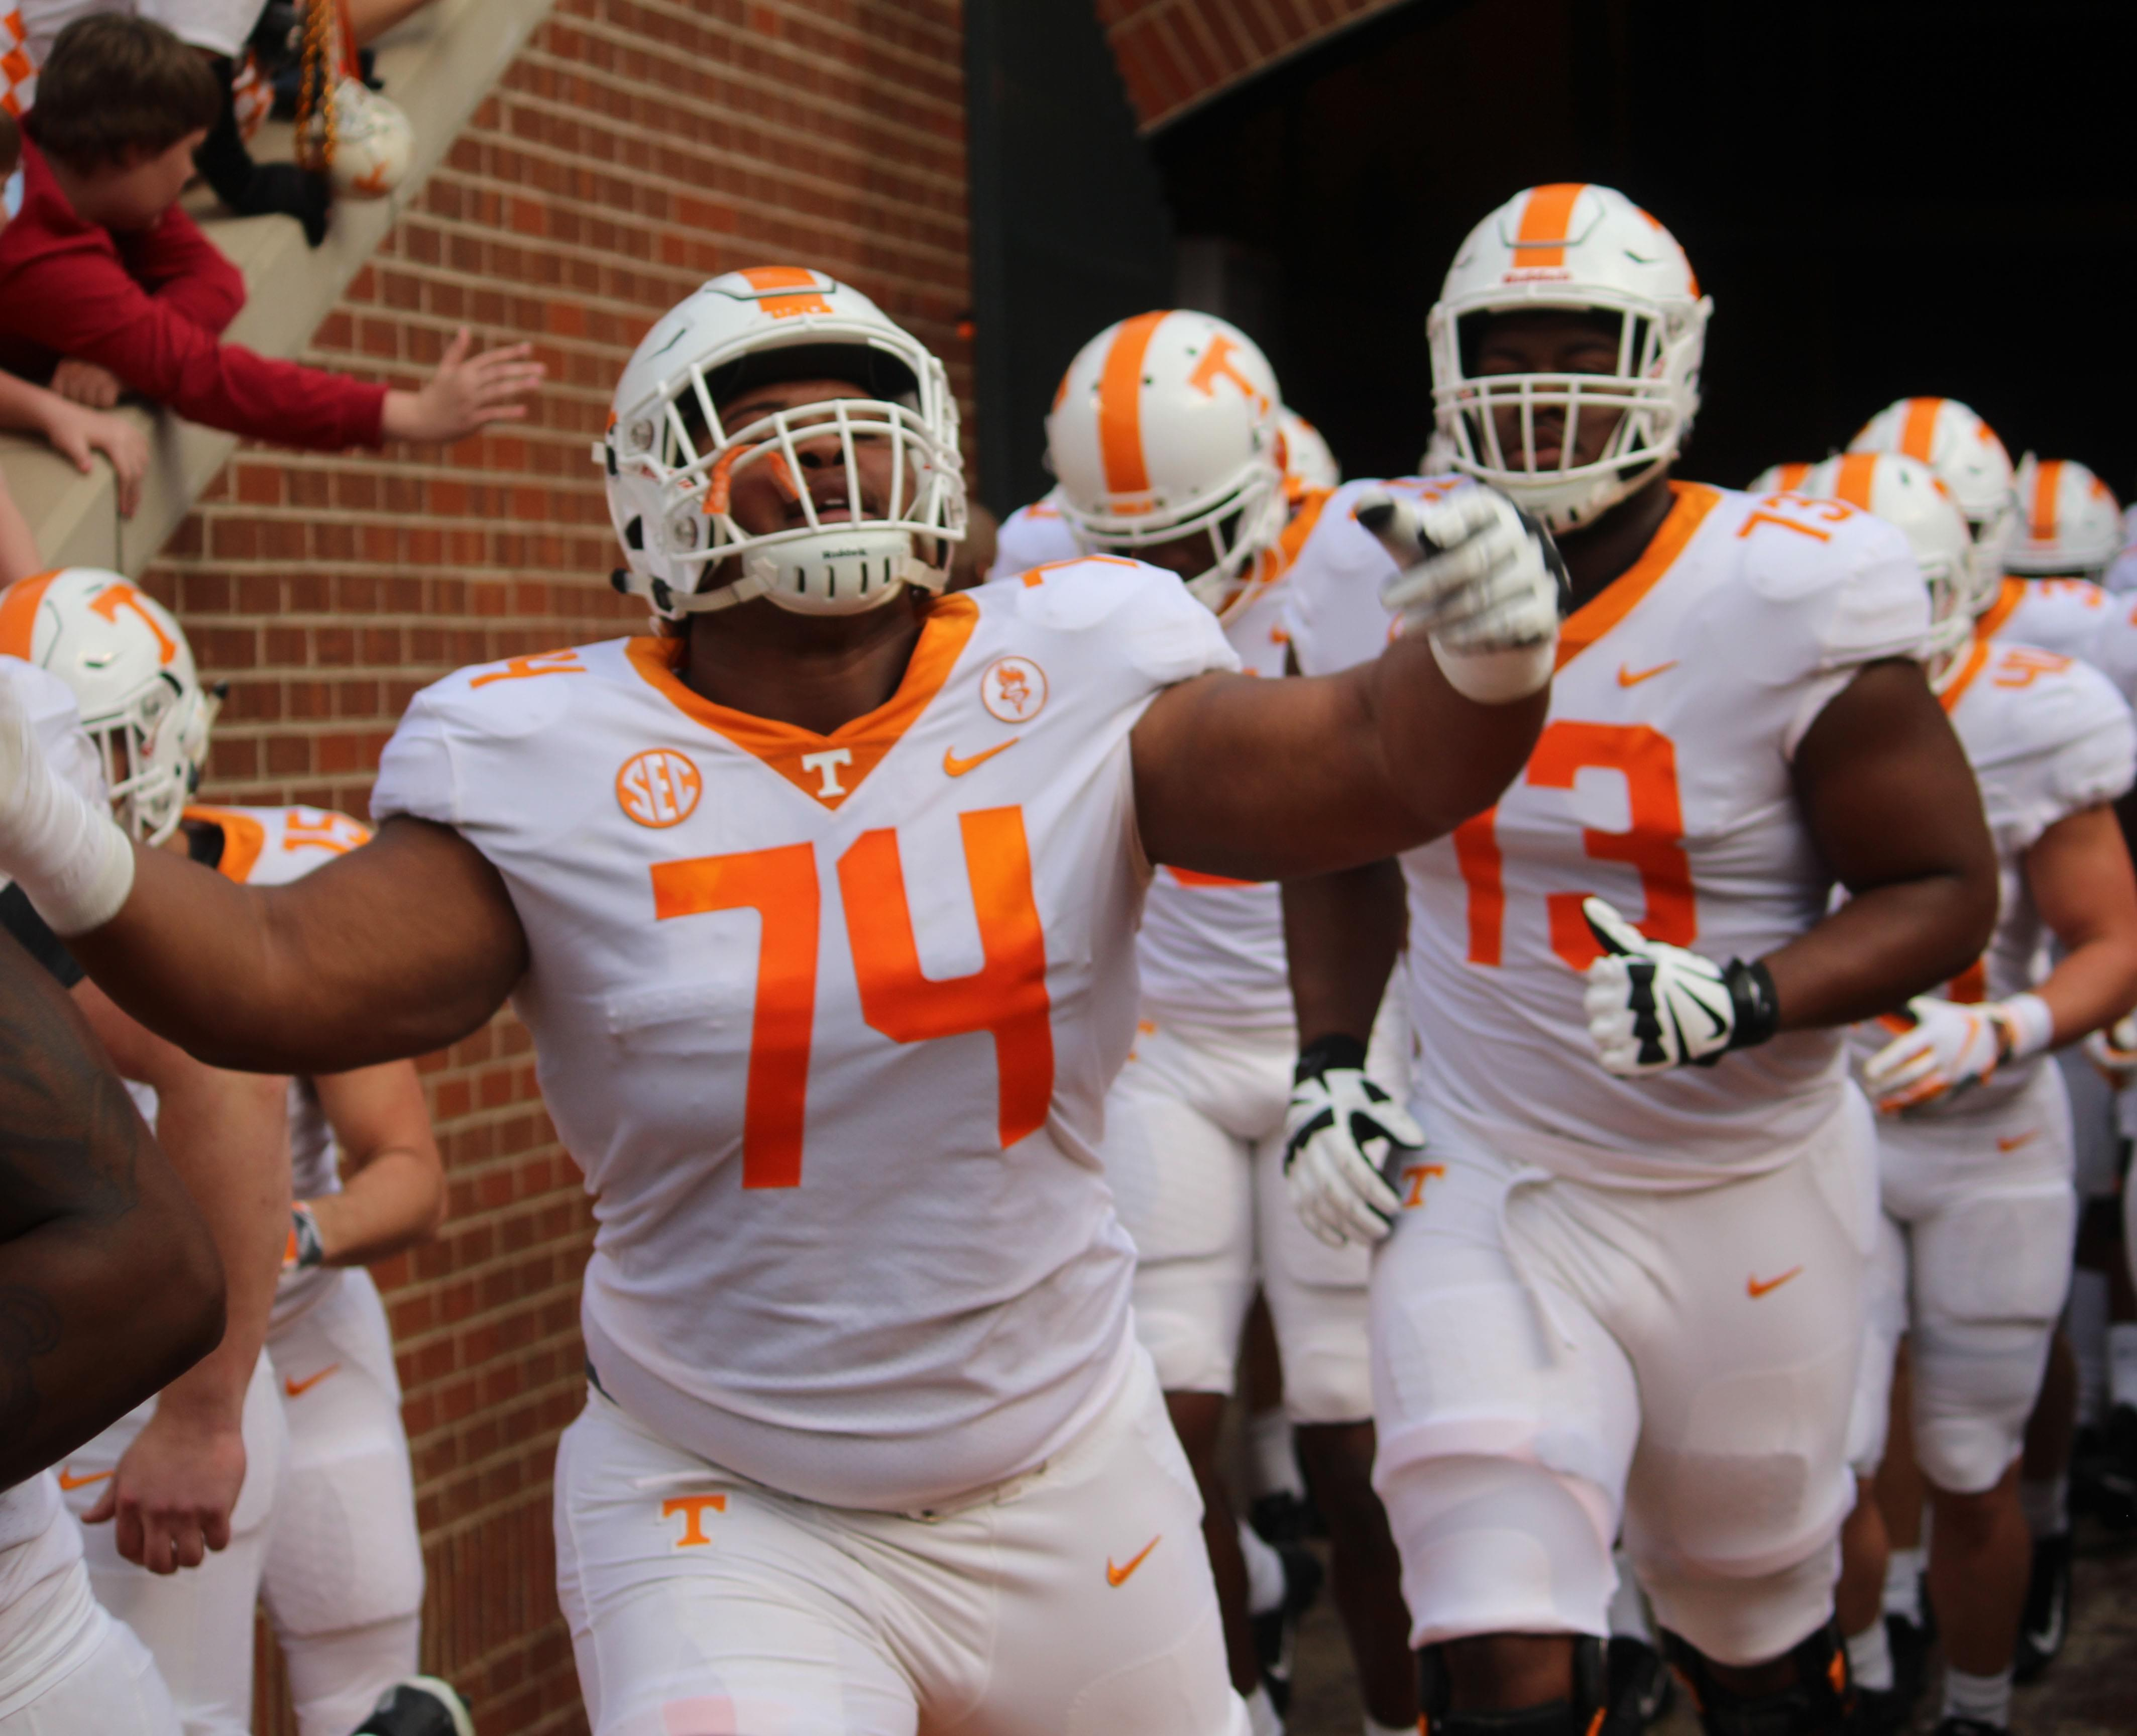 Cainer's Corner: Vols new coach won't please everyone